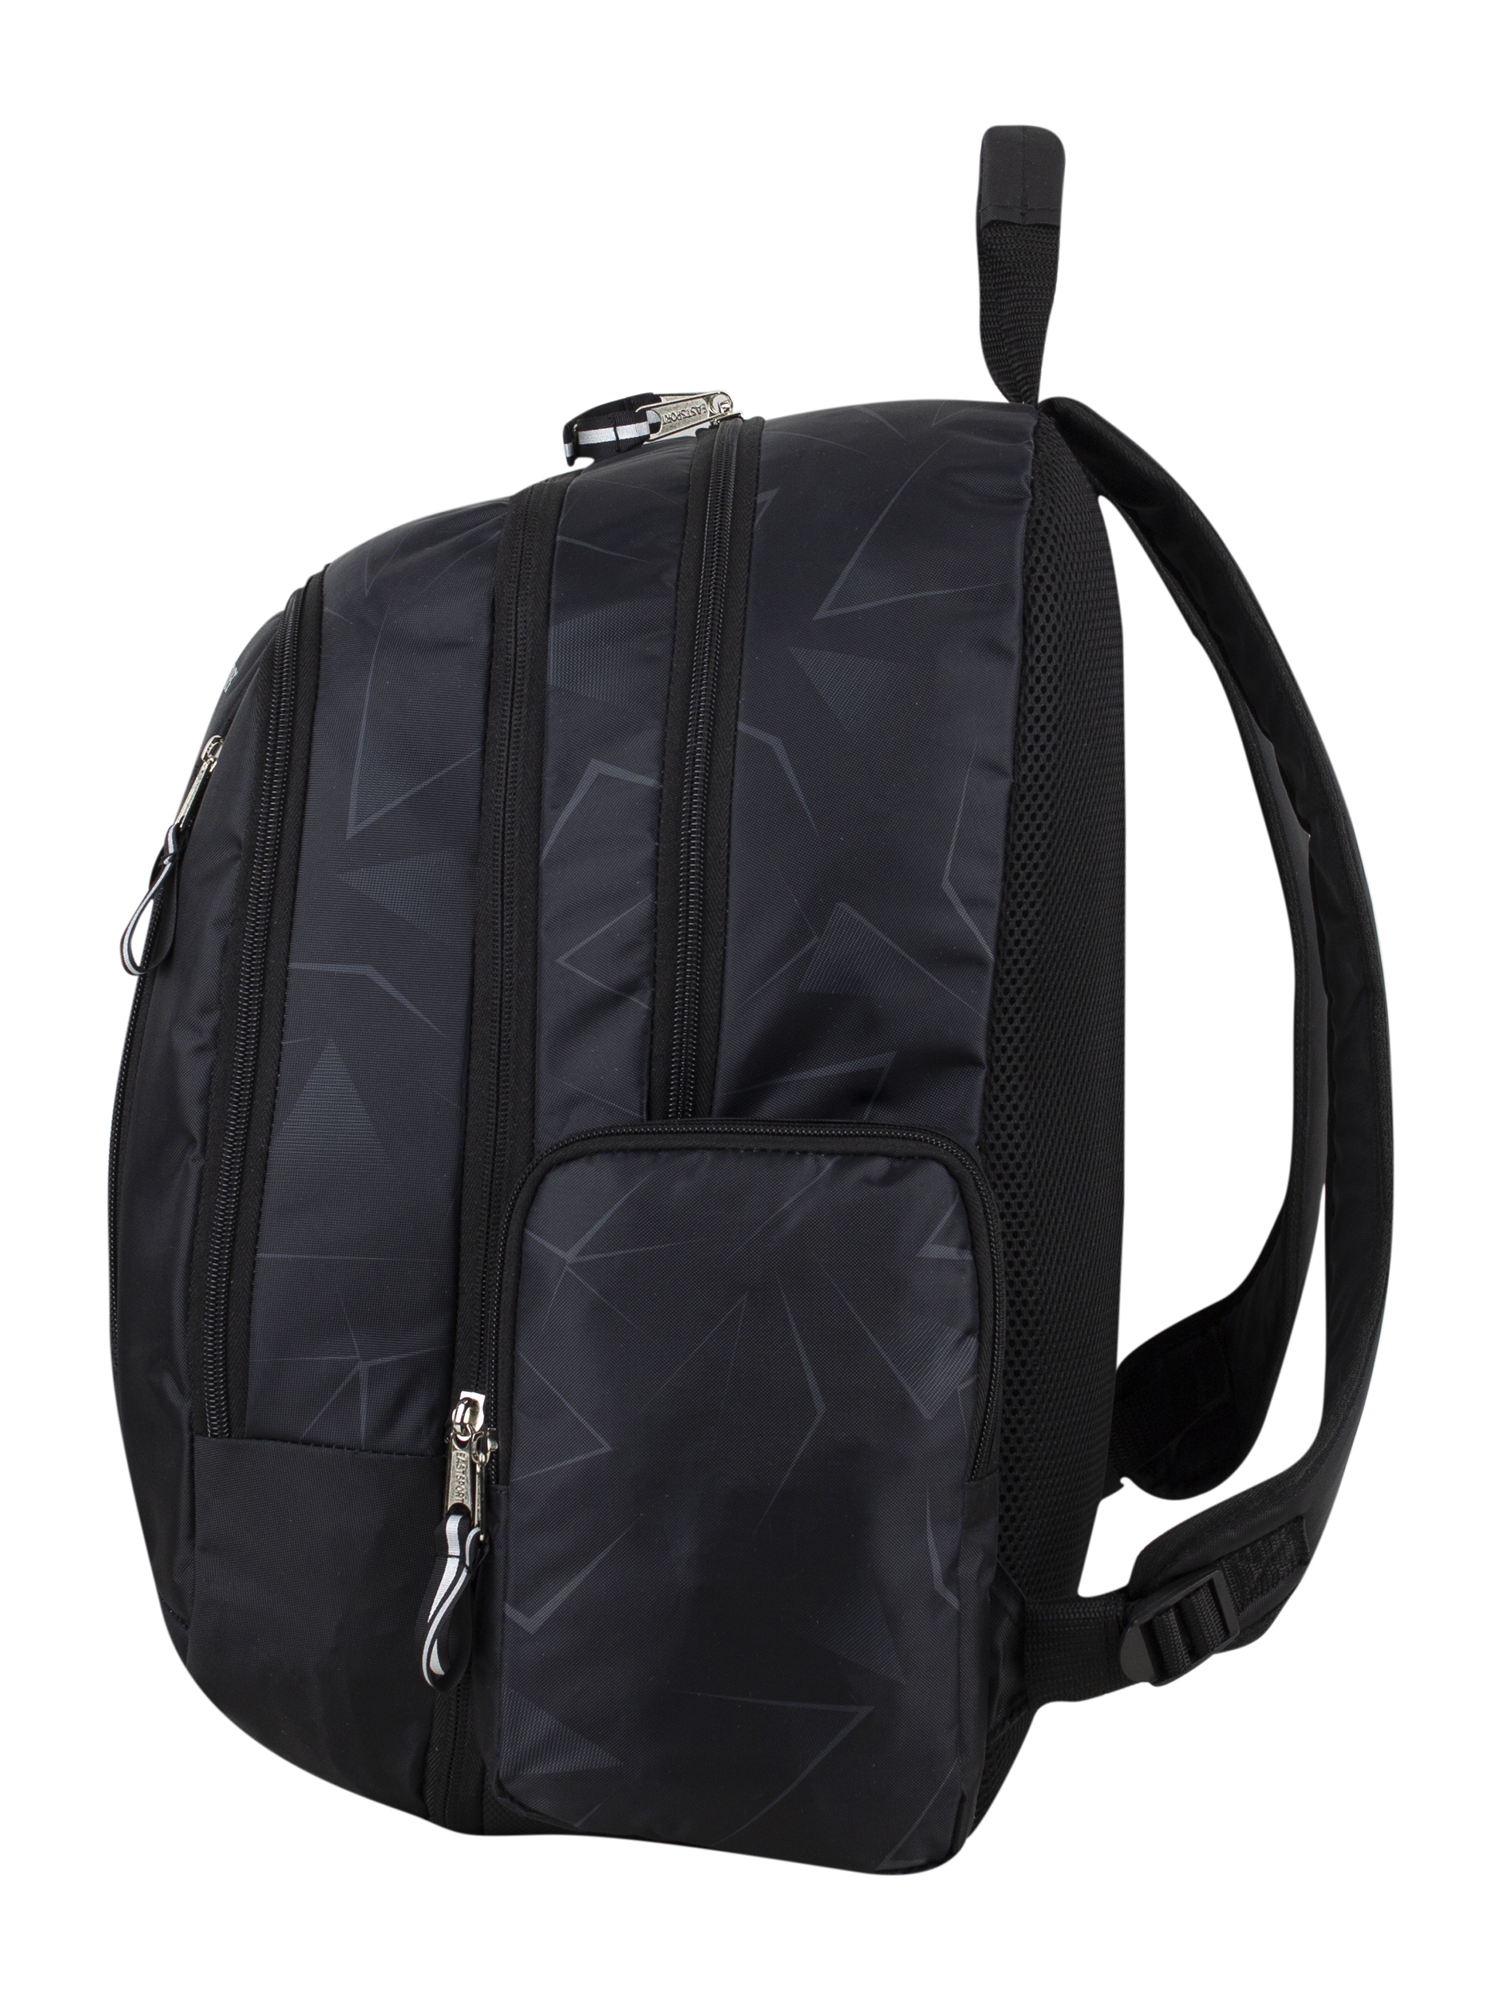 Details about  /NEW EASTSPORT XL EXPANSION EXTRA LARGE HIKING SCHOOL BACKPACK BOOK BAG